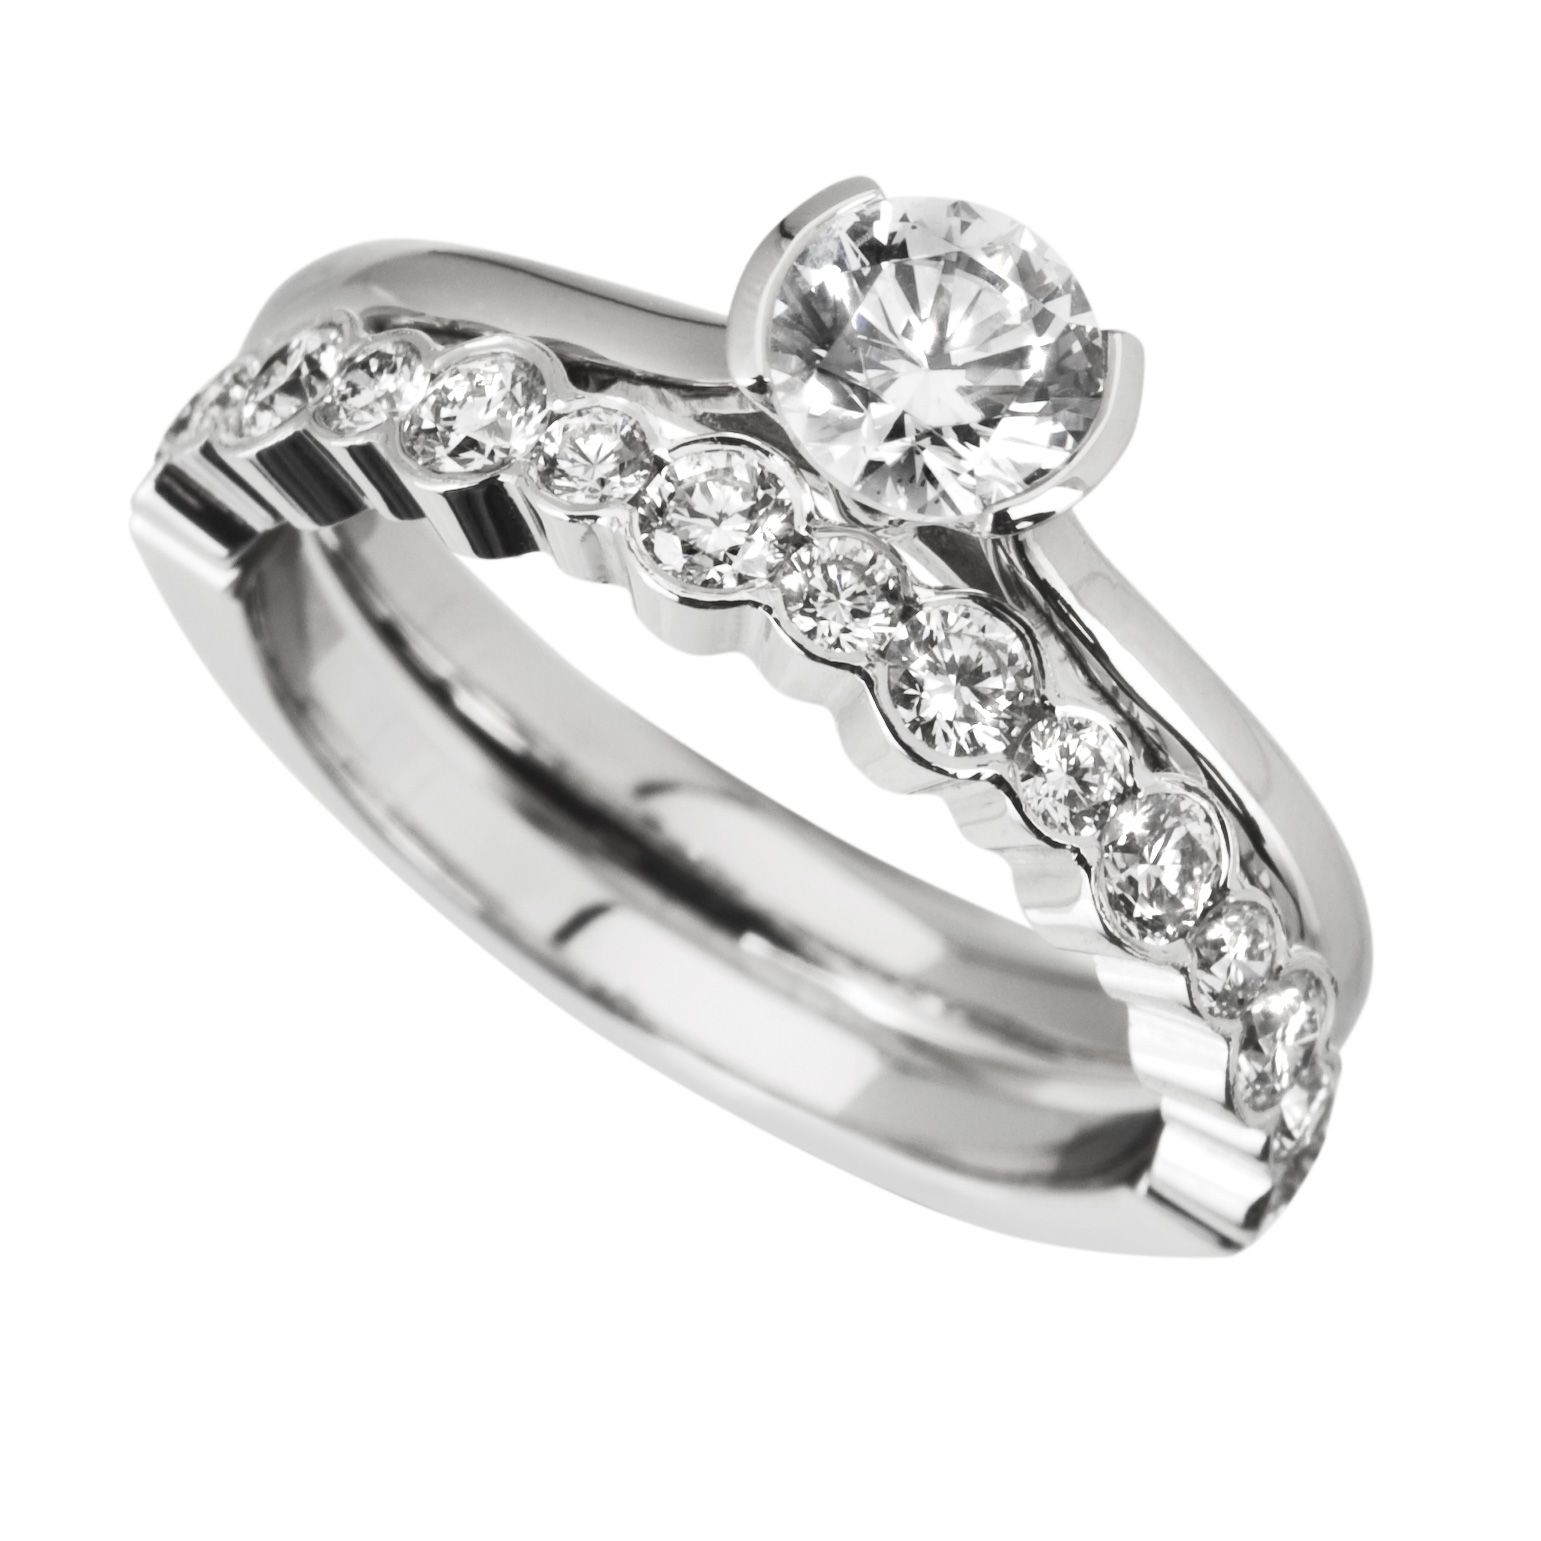 images of wedding rings sets rub over engagement ring with matching diamond - Engagement Ring And Wedding Band Set